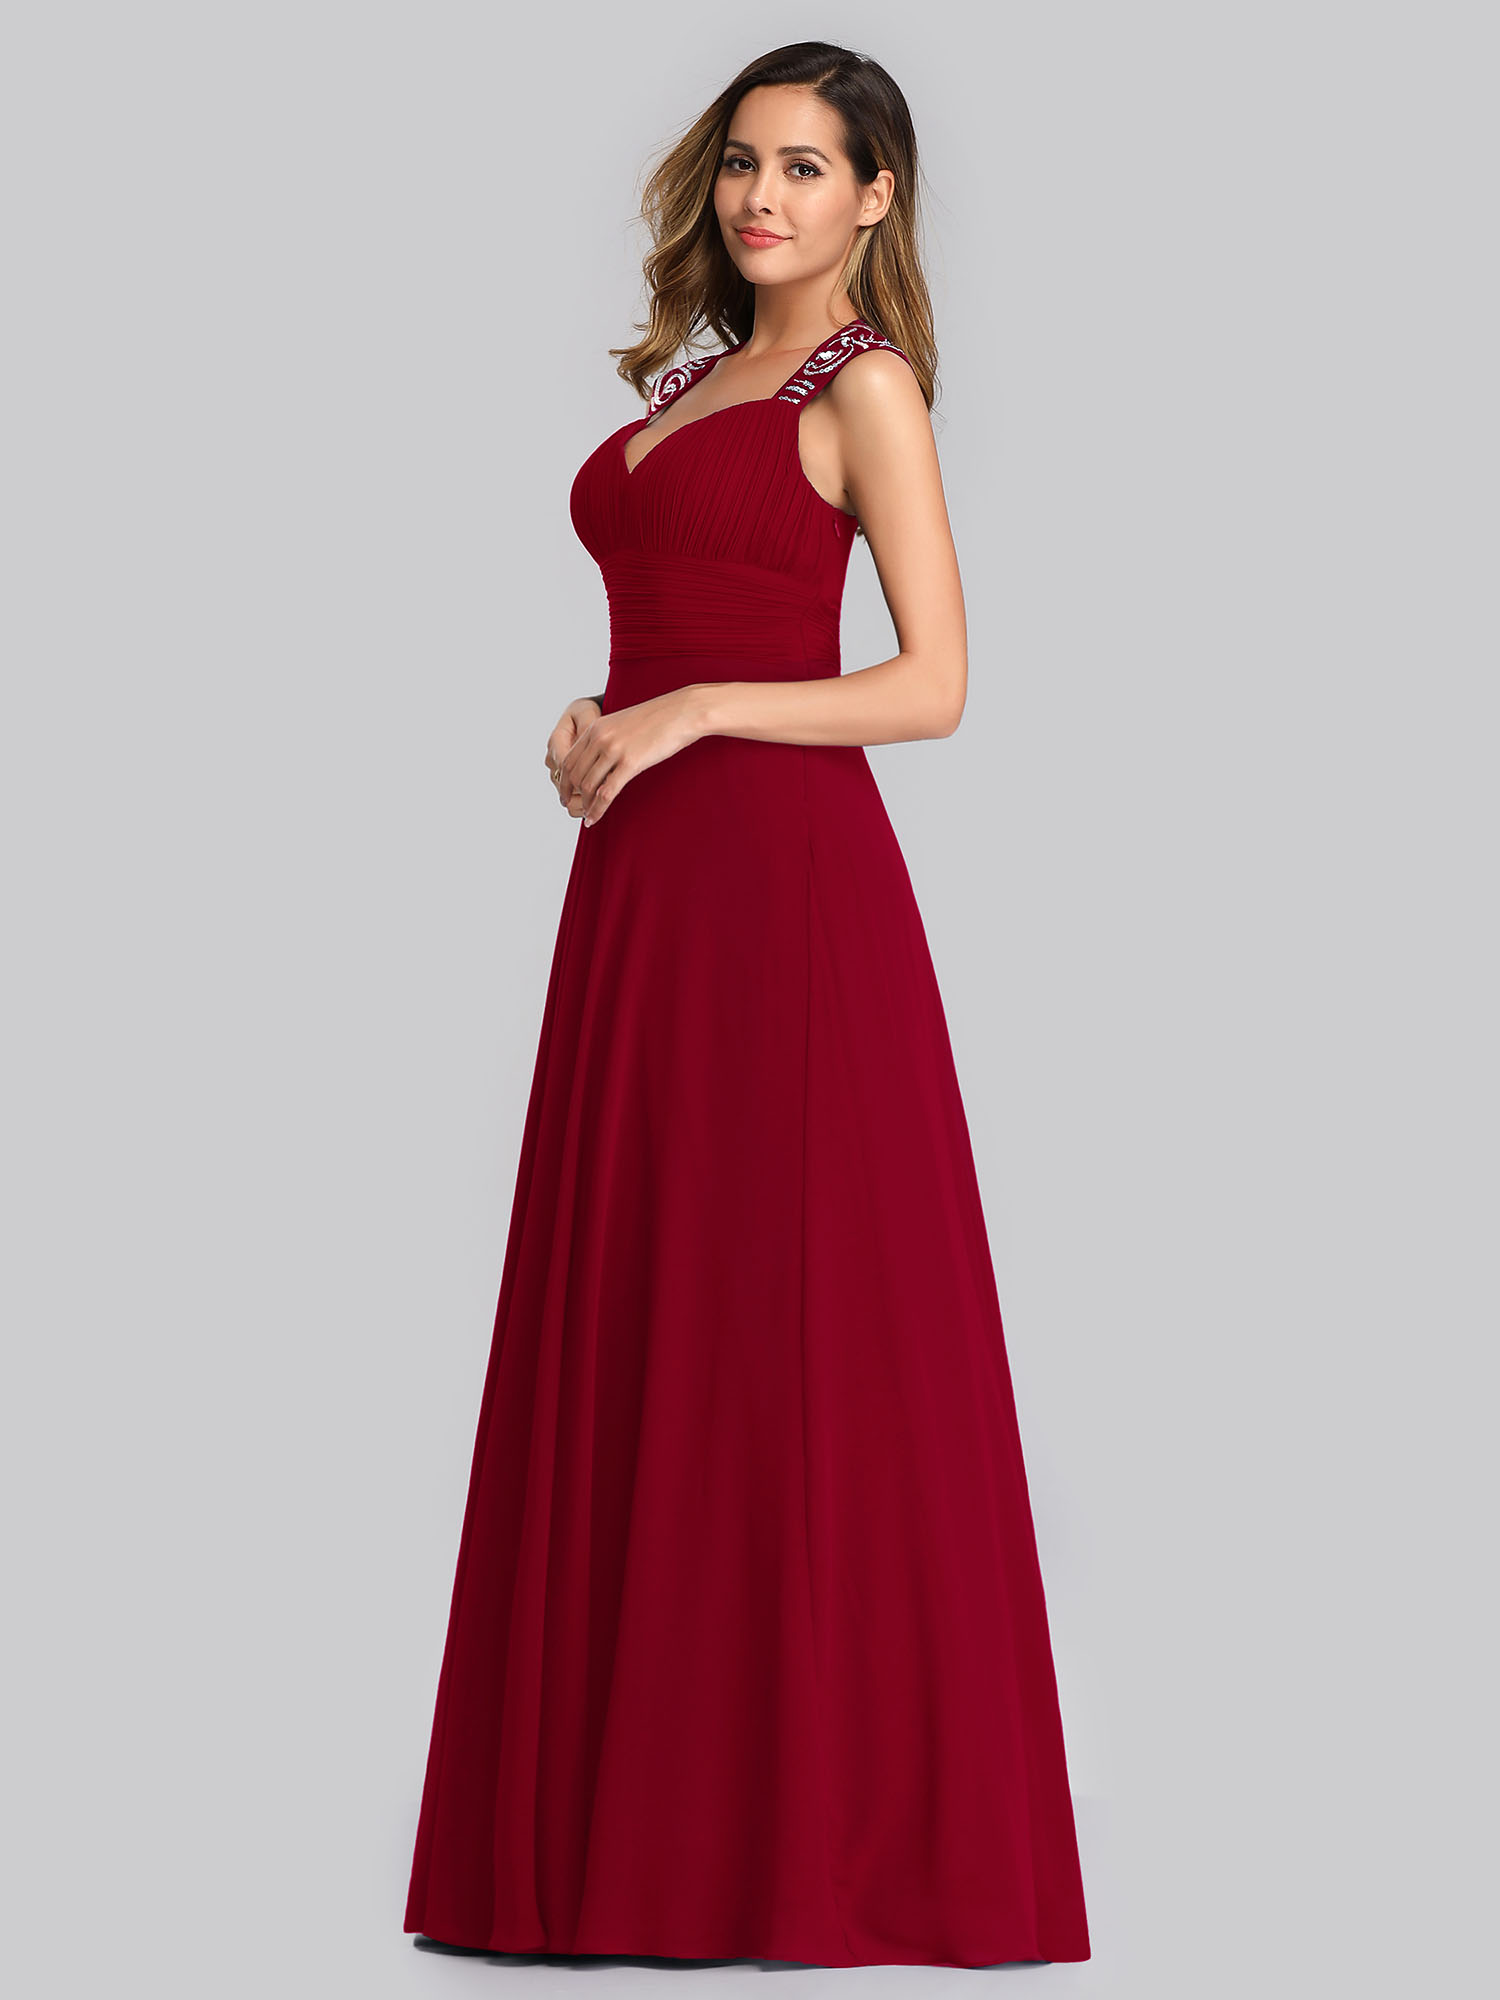 Ever-Pretty-Cap-Sleeve-Bridesmaid-Dresses-Elegant-Long-V-neck-Evening-Gown-09672 thumbnail 43